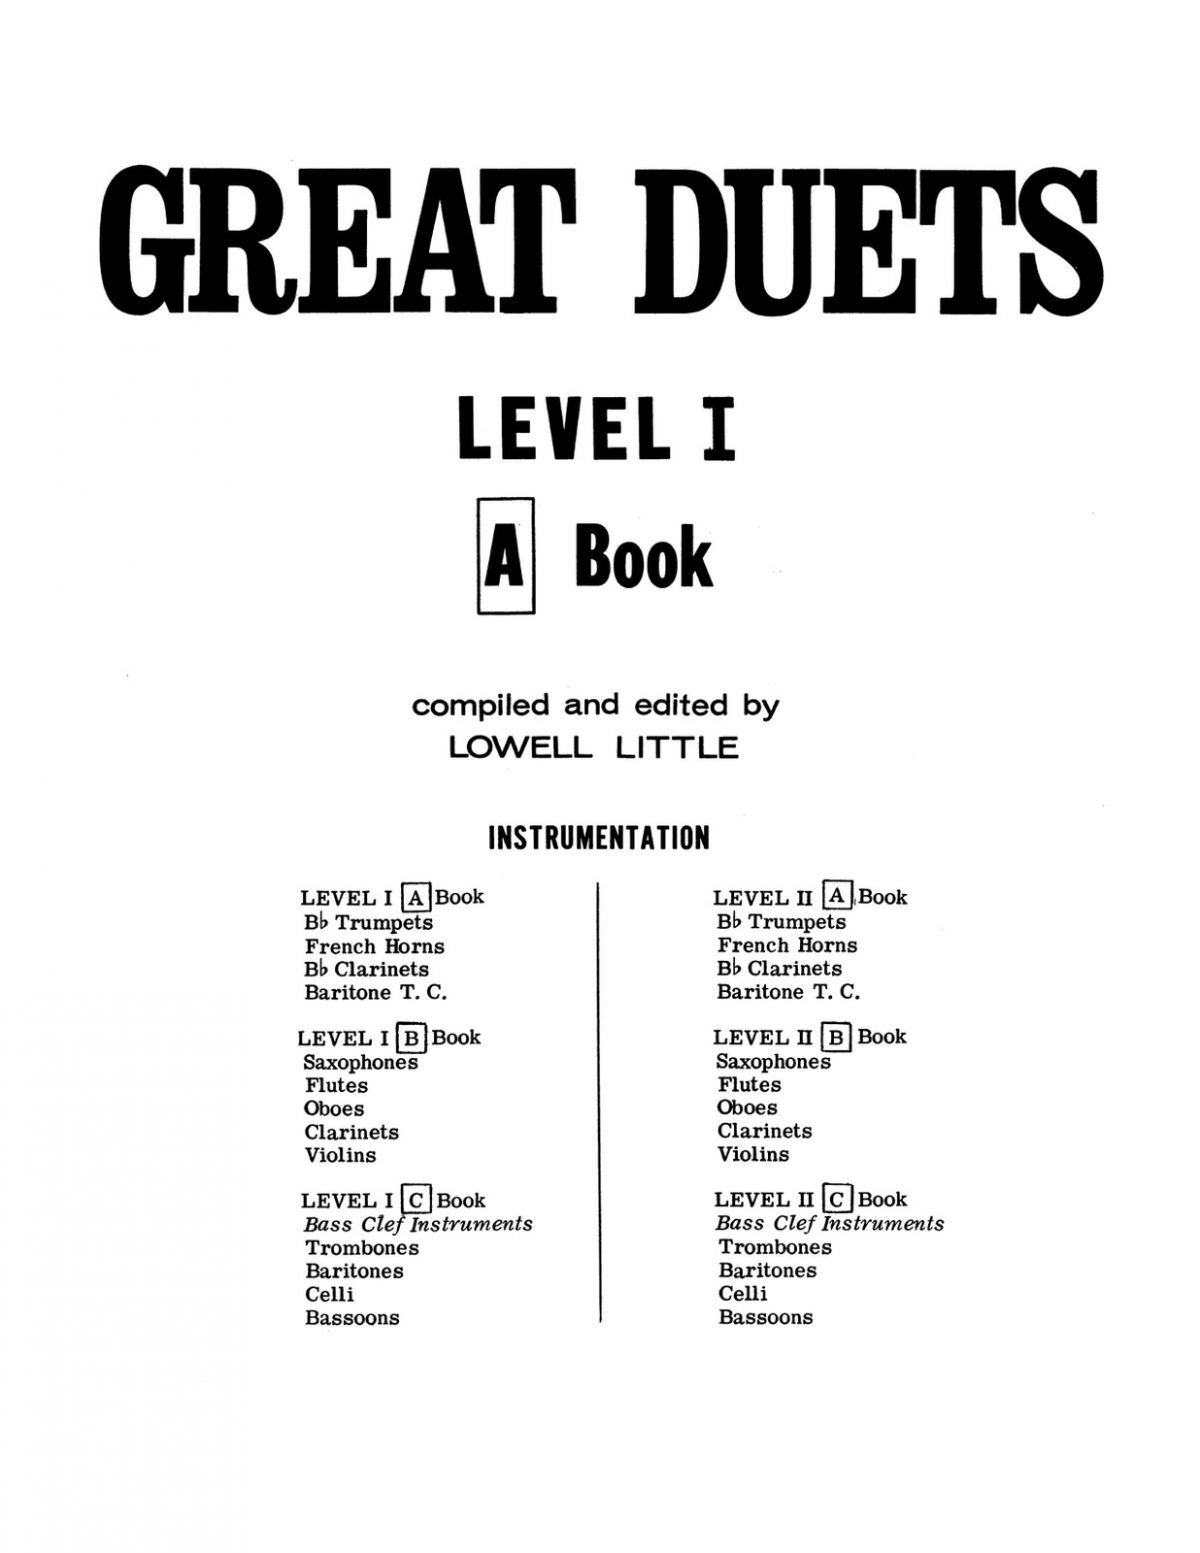 Little, Great Duets Level 1 Book A-p03